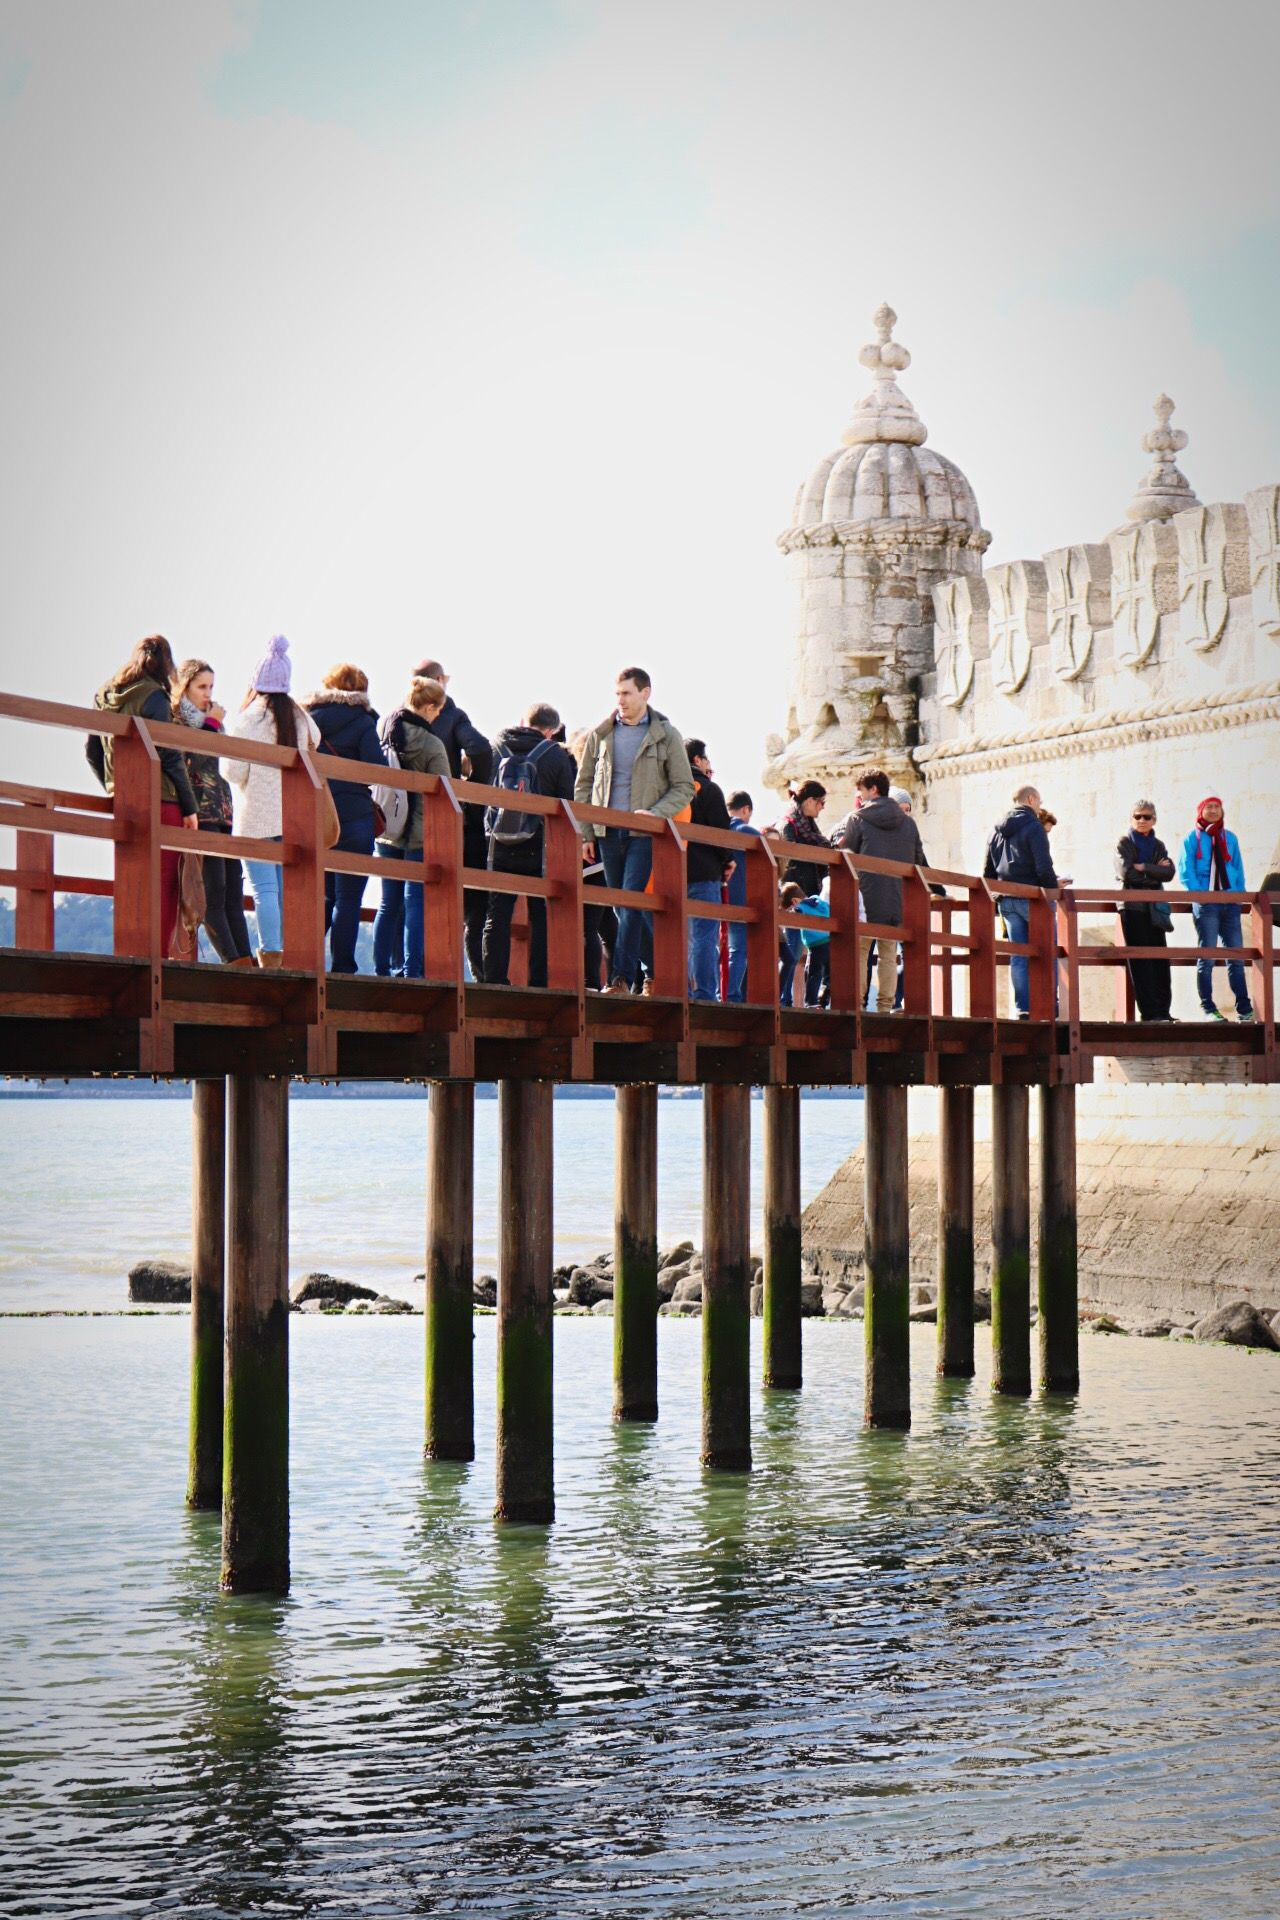 Adult Adults Only Architecture Bridge Day Large Group Of People Men Outdoors People People Photography Real People Sky Standing Streetphotography Taking Photos Water Water_collection Waterfront Women Young Adult